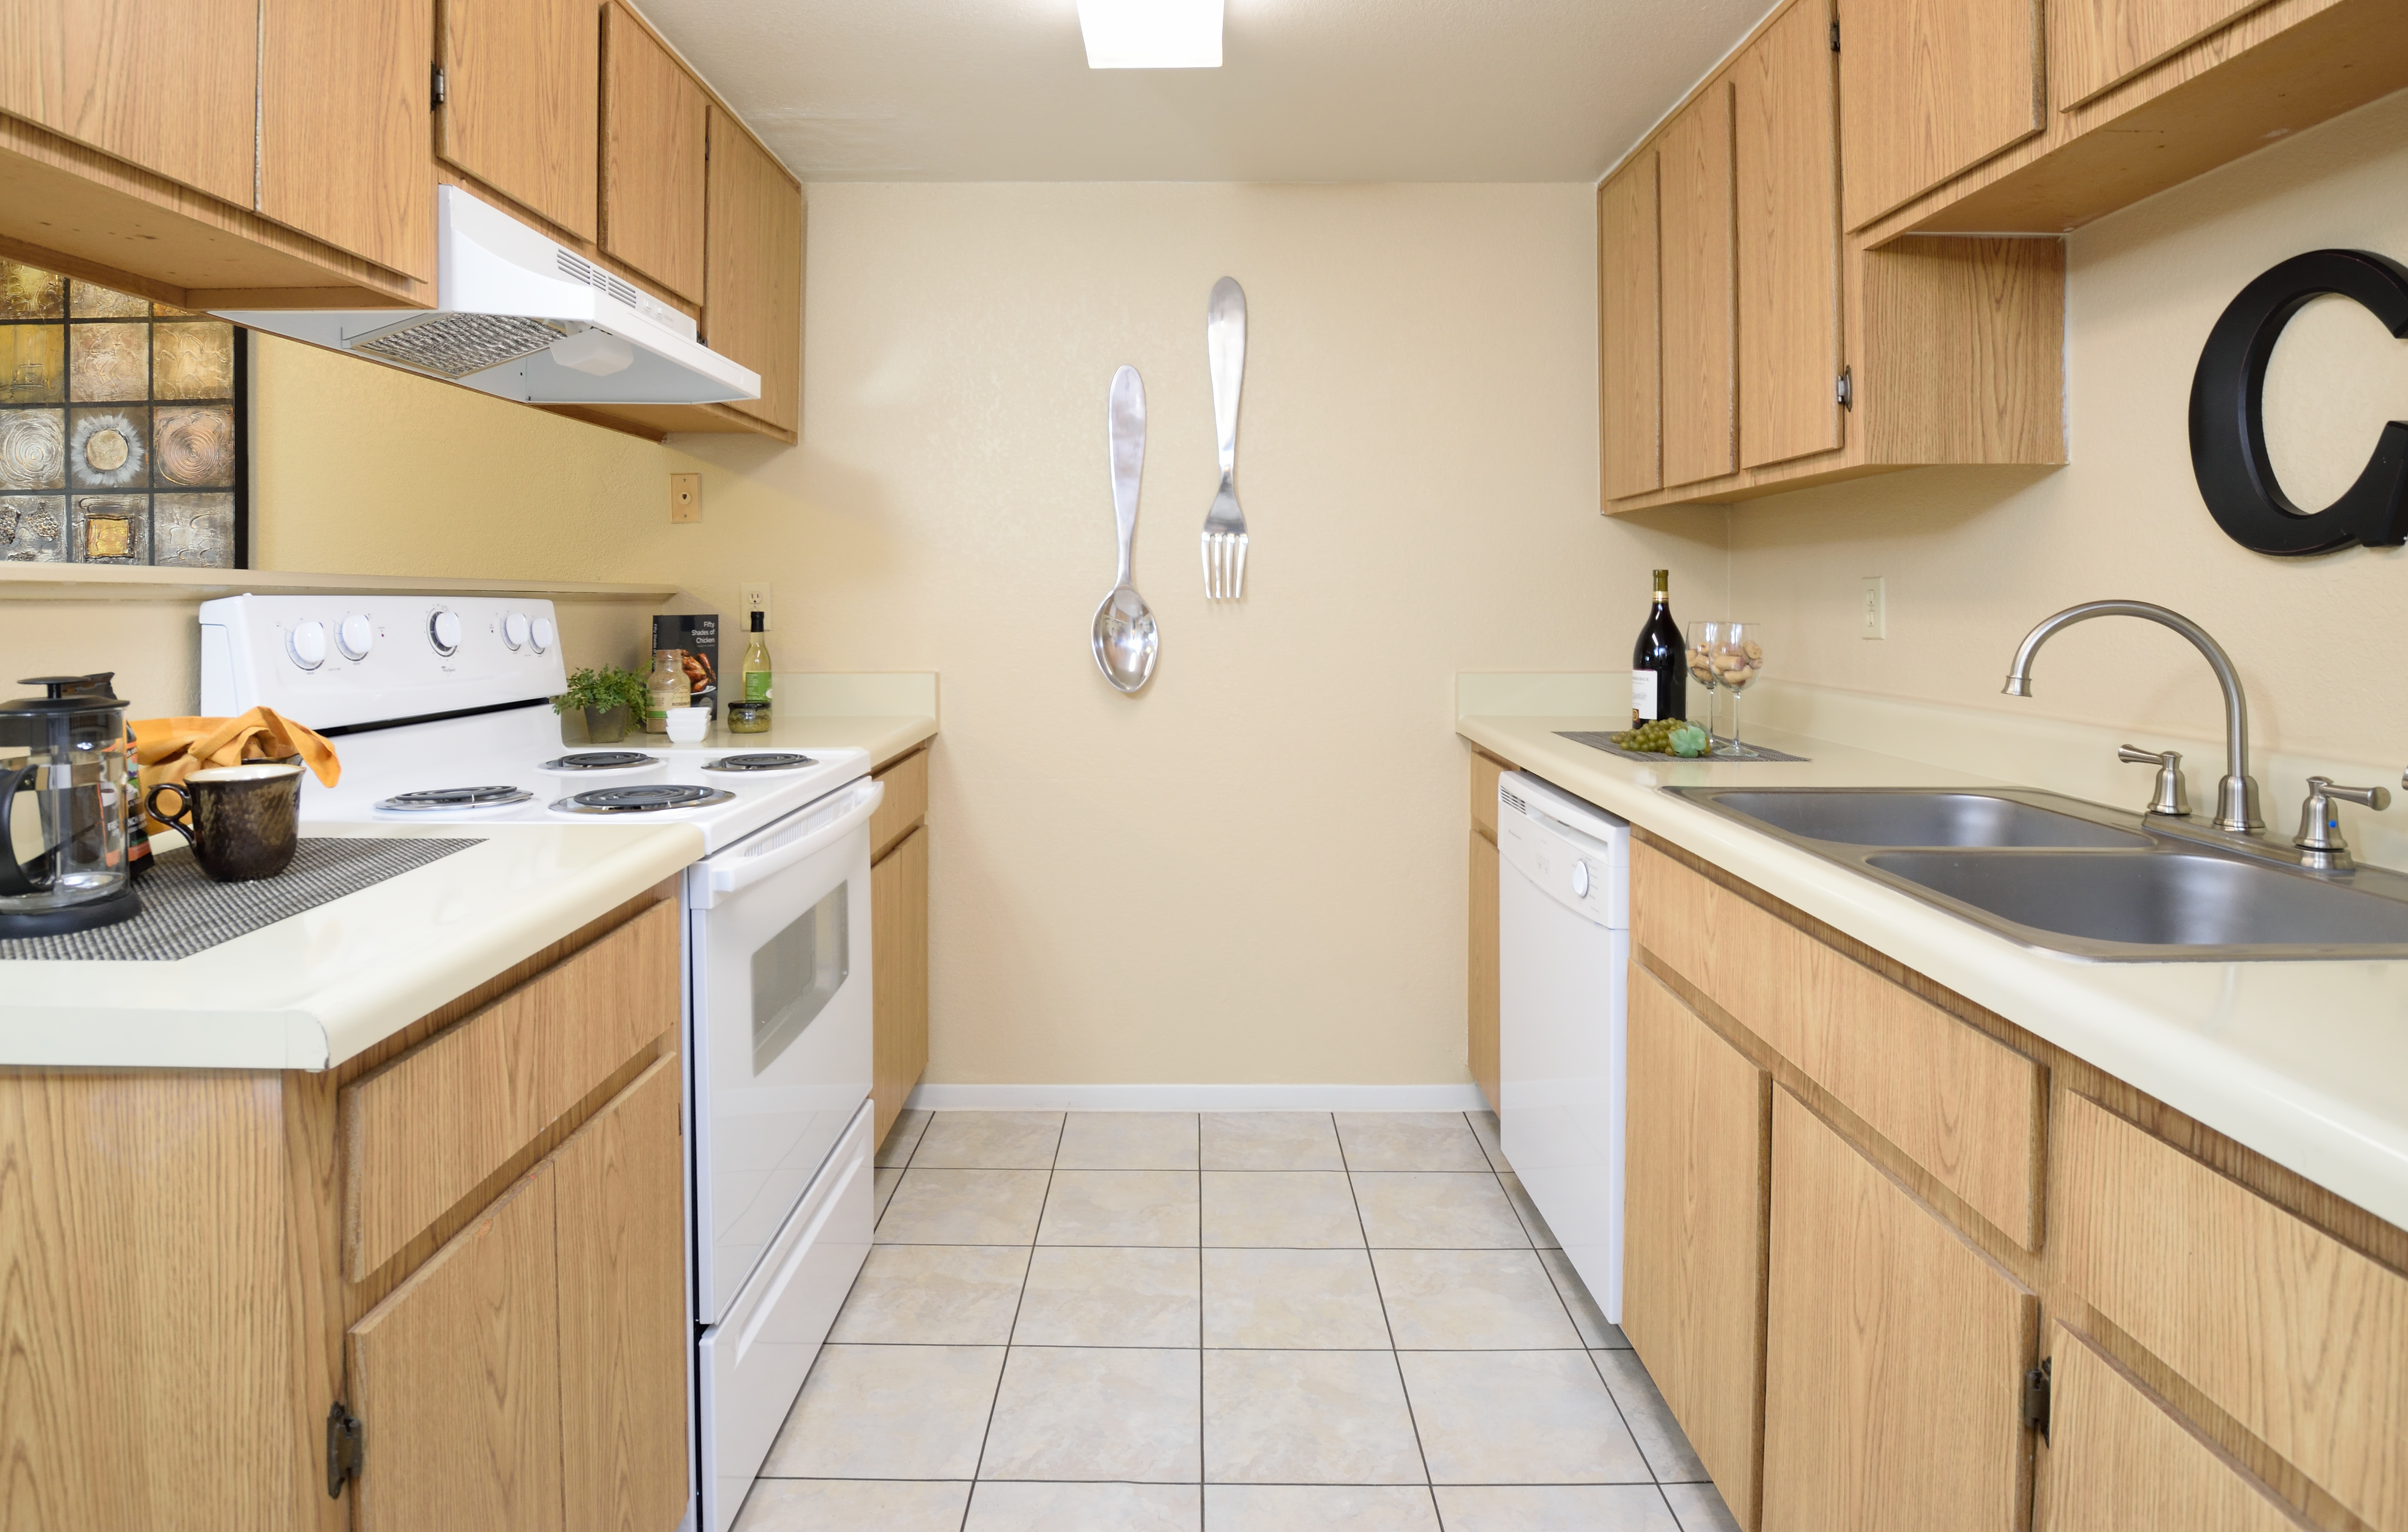 View of Kitchen, Showing Galley Style, Gas Appliances, Tile Flooring, Cabinets, Double Sink and Counter Tops,  at Camelot Apartments